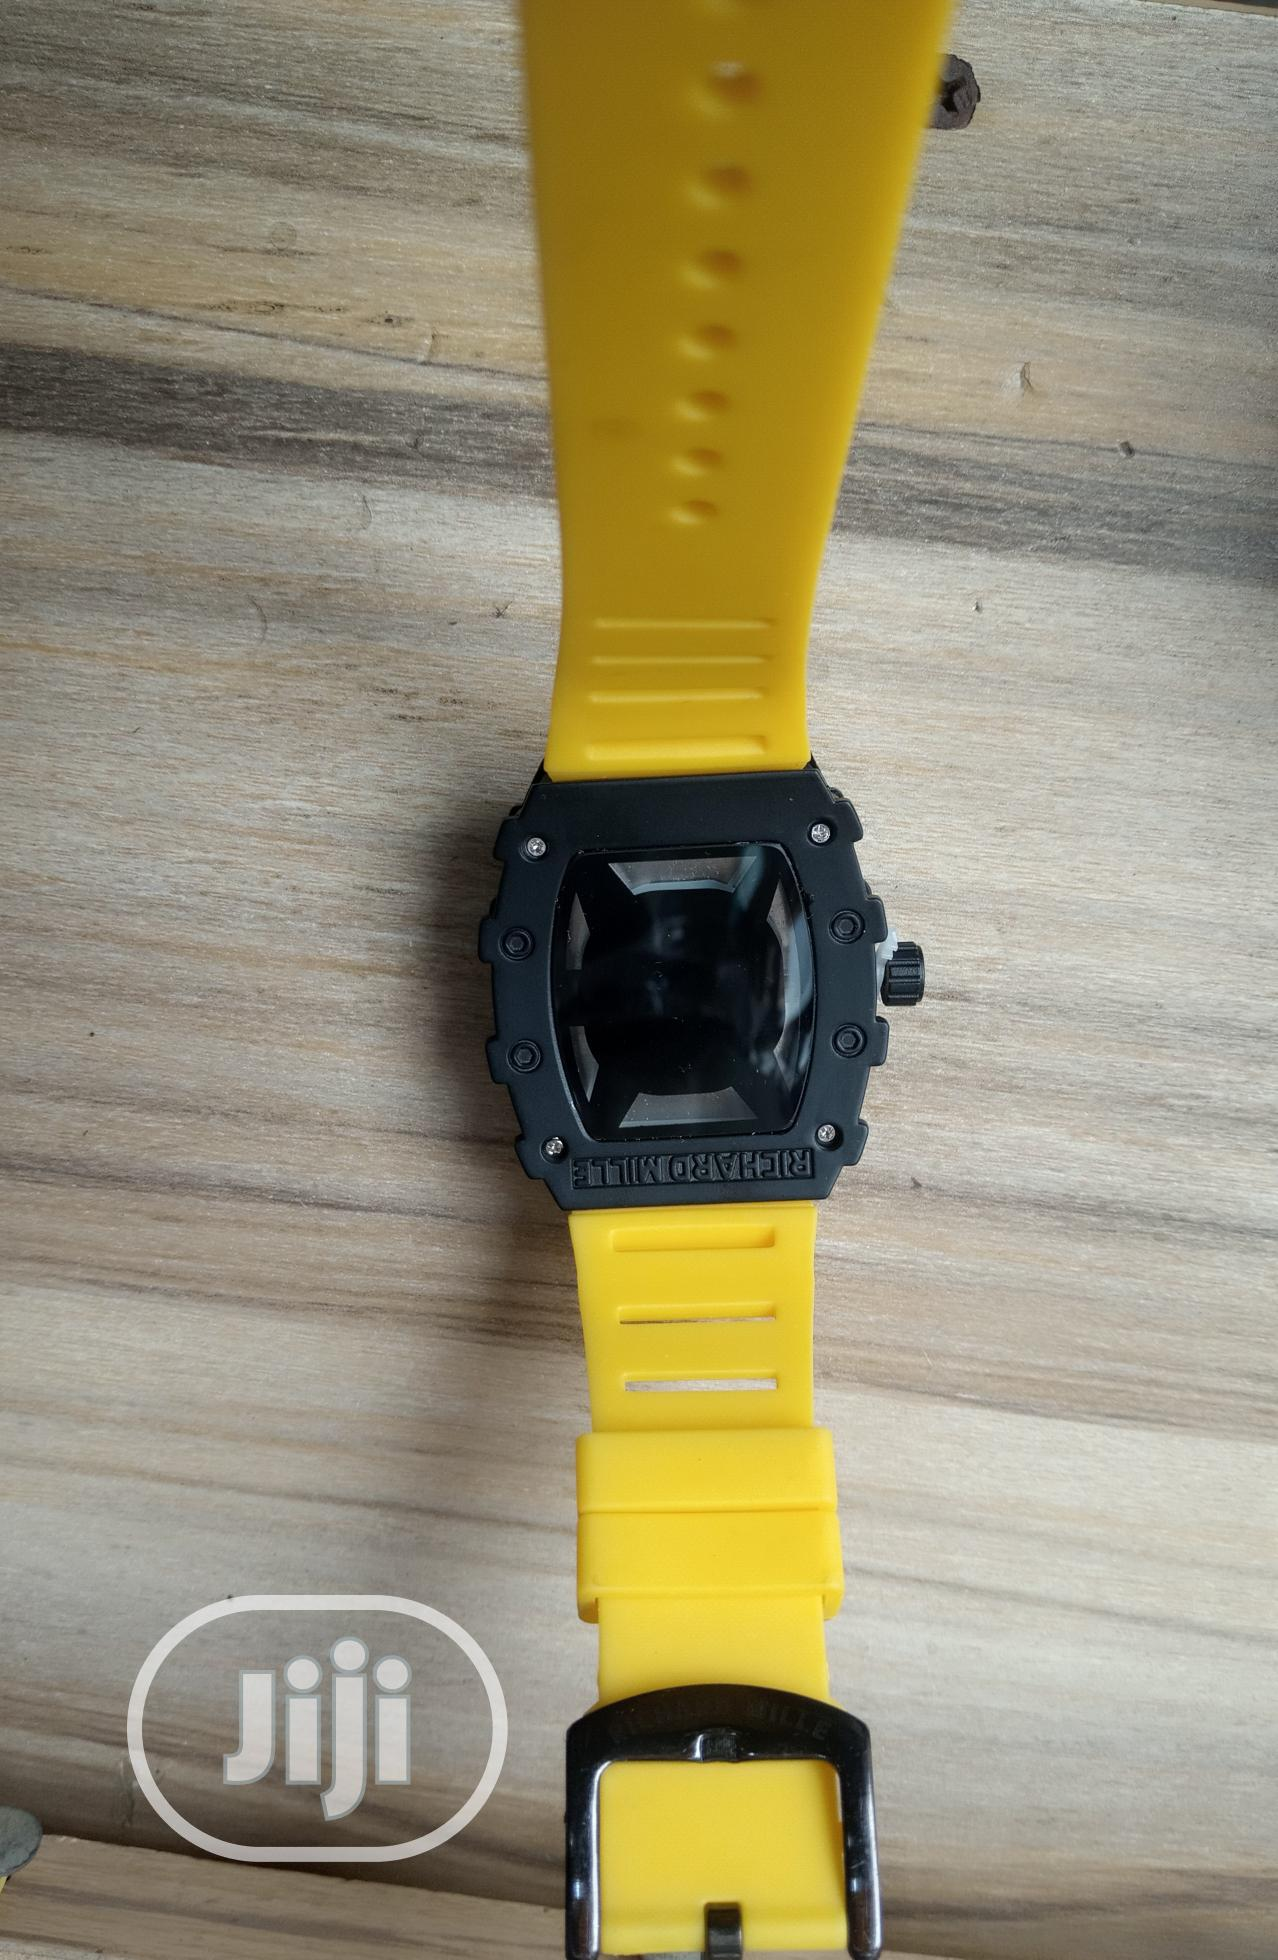 Richard Mille Men's Yellow Rubber Wristwatch   Watches for sale in Surulere, Lagos State, Nigeria